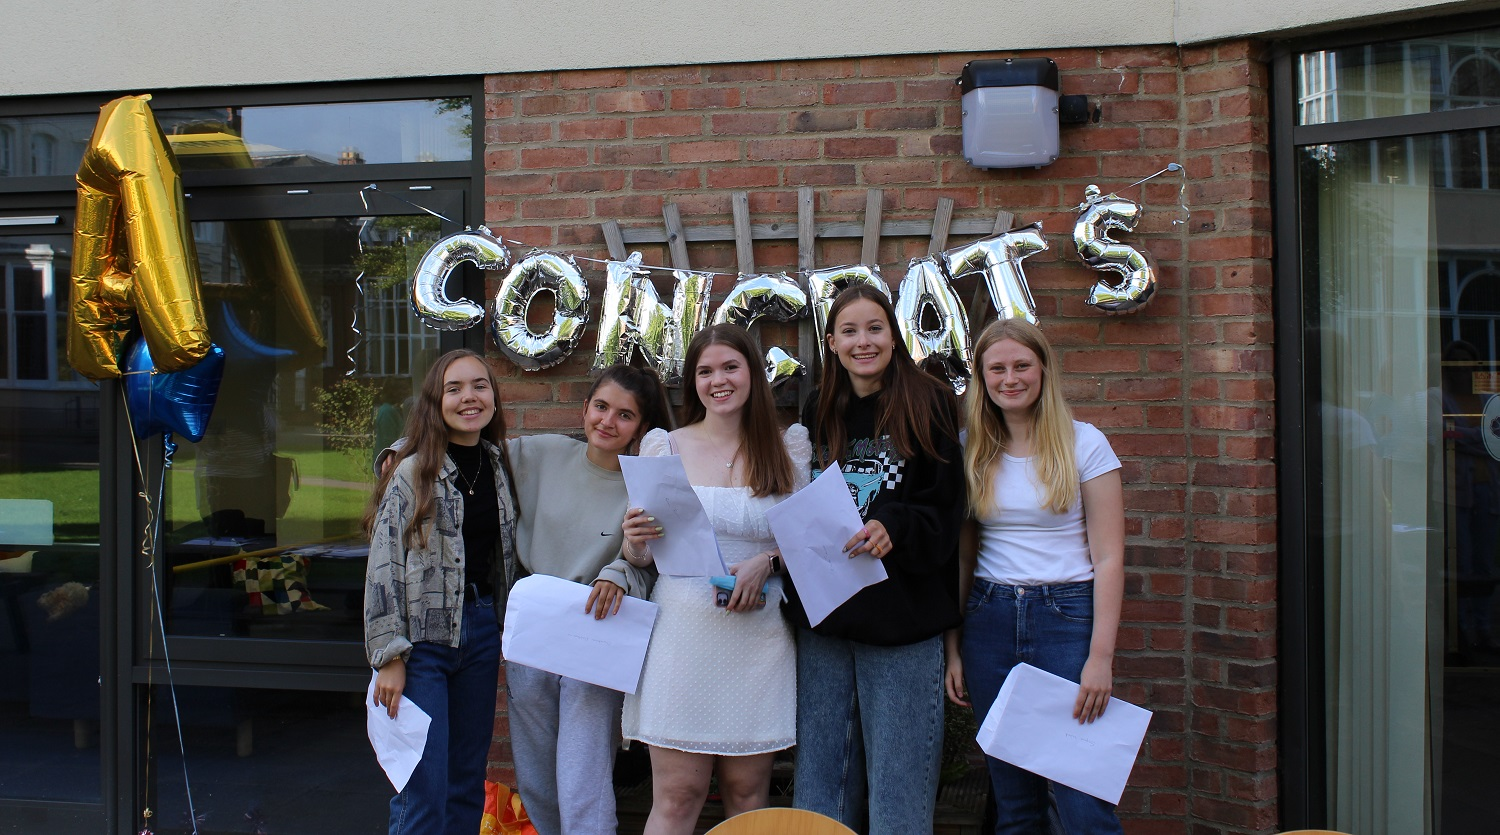 The Mount School York celebrates 'A'-mazing A Level Results